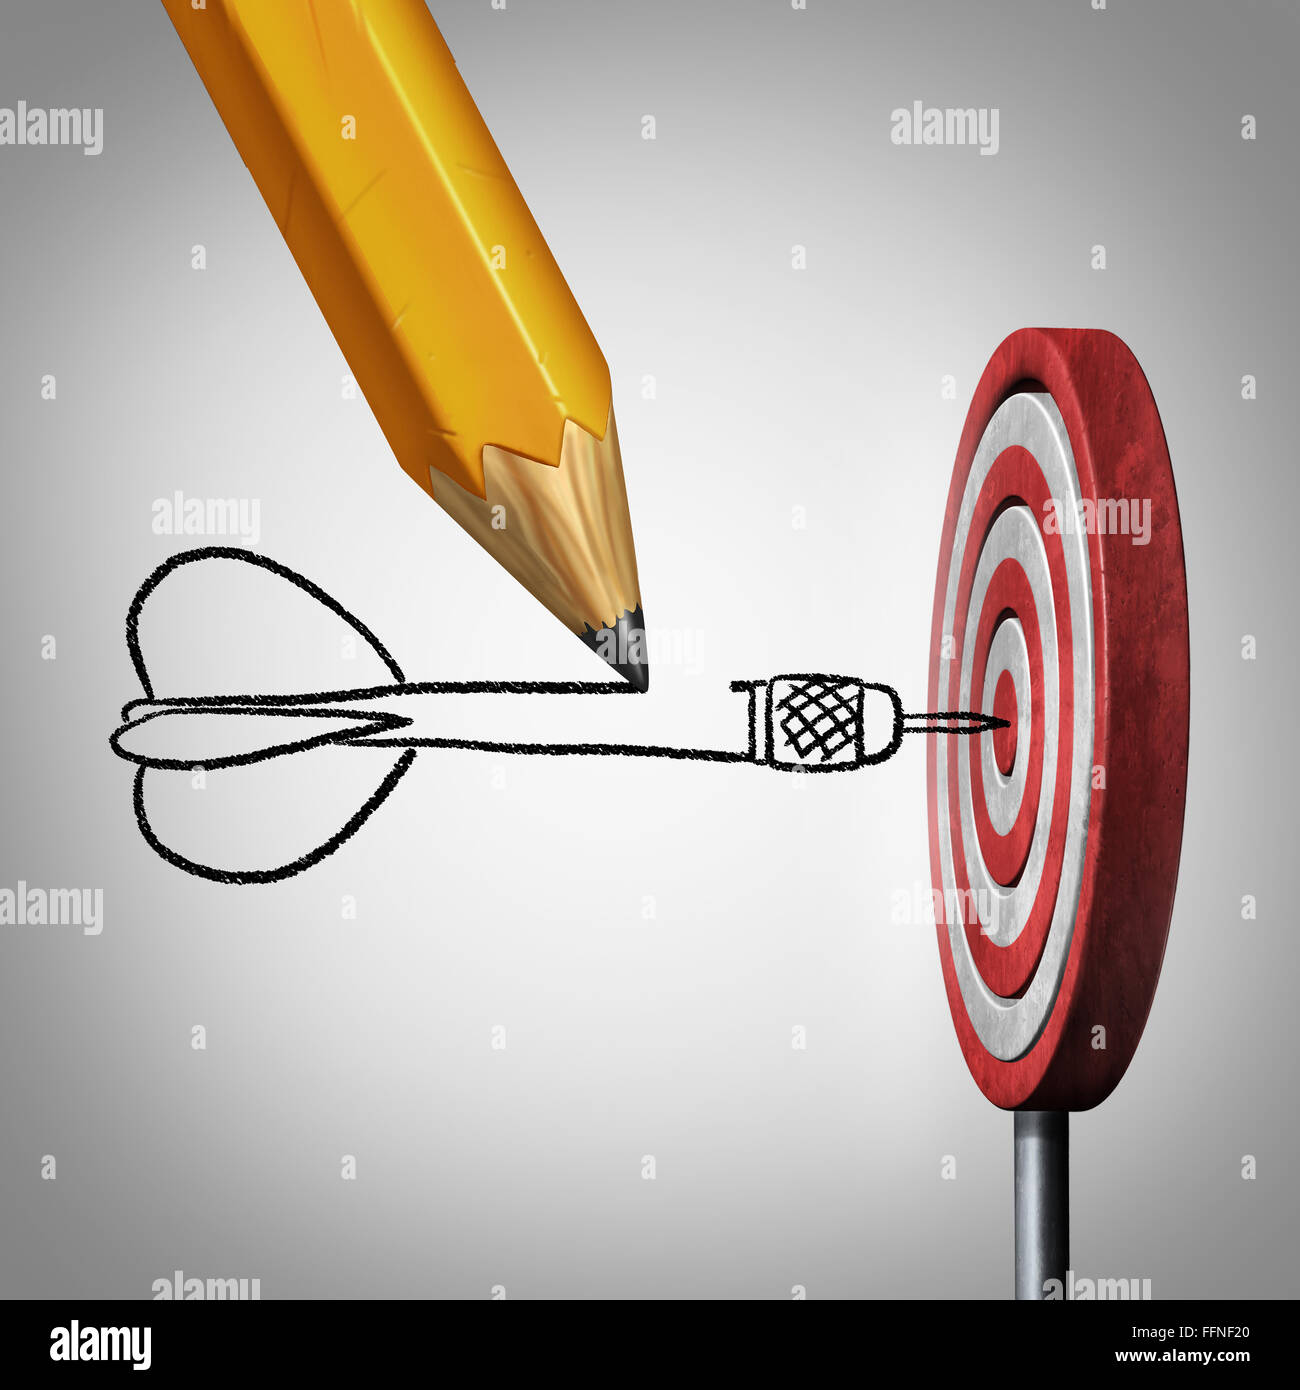 Success goal planning business concept as a pencil drawing a dart hitting the center of a target on a dartboard - Stock Image